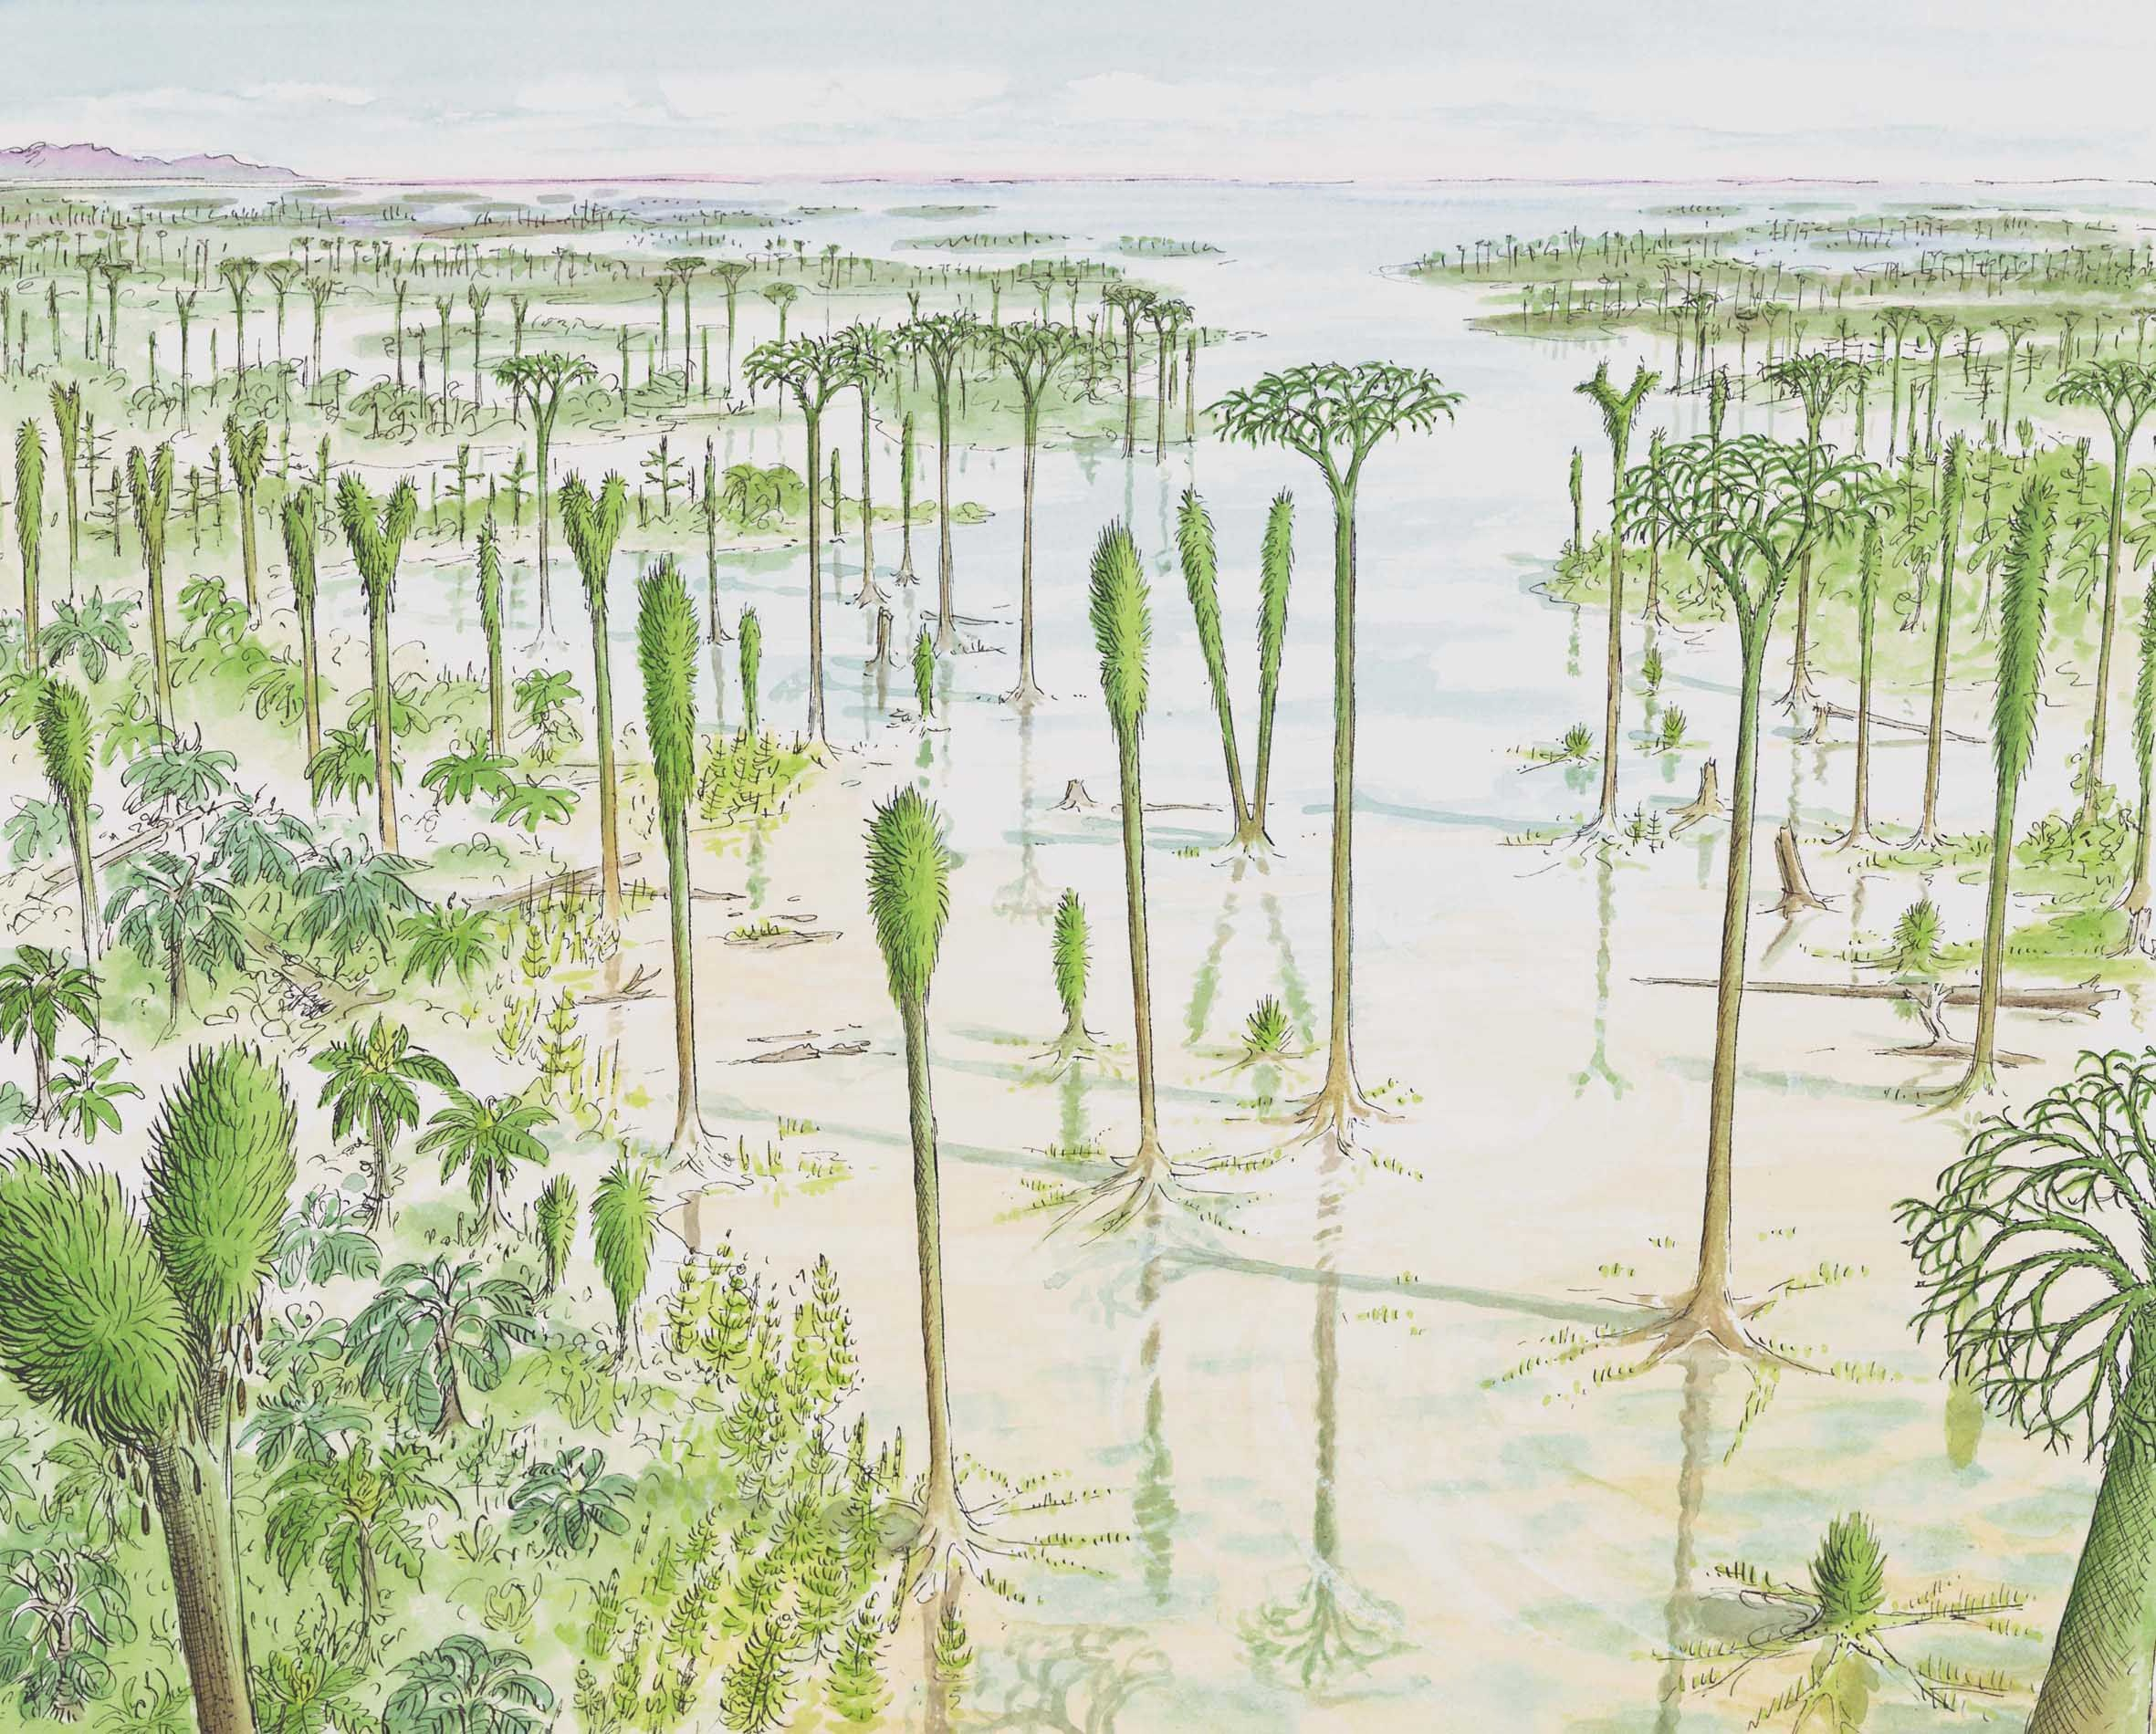 Carboniferous Coal Swamp Created With Guidance From Bill Dimichele